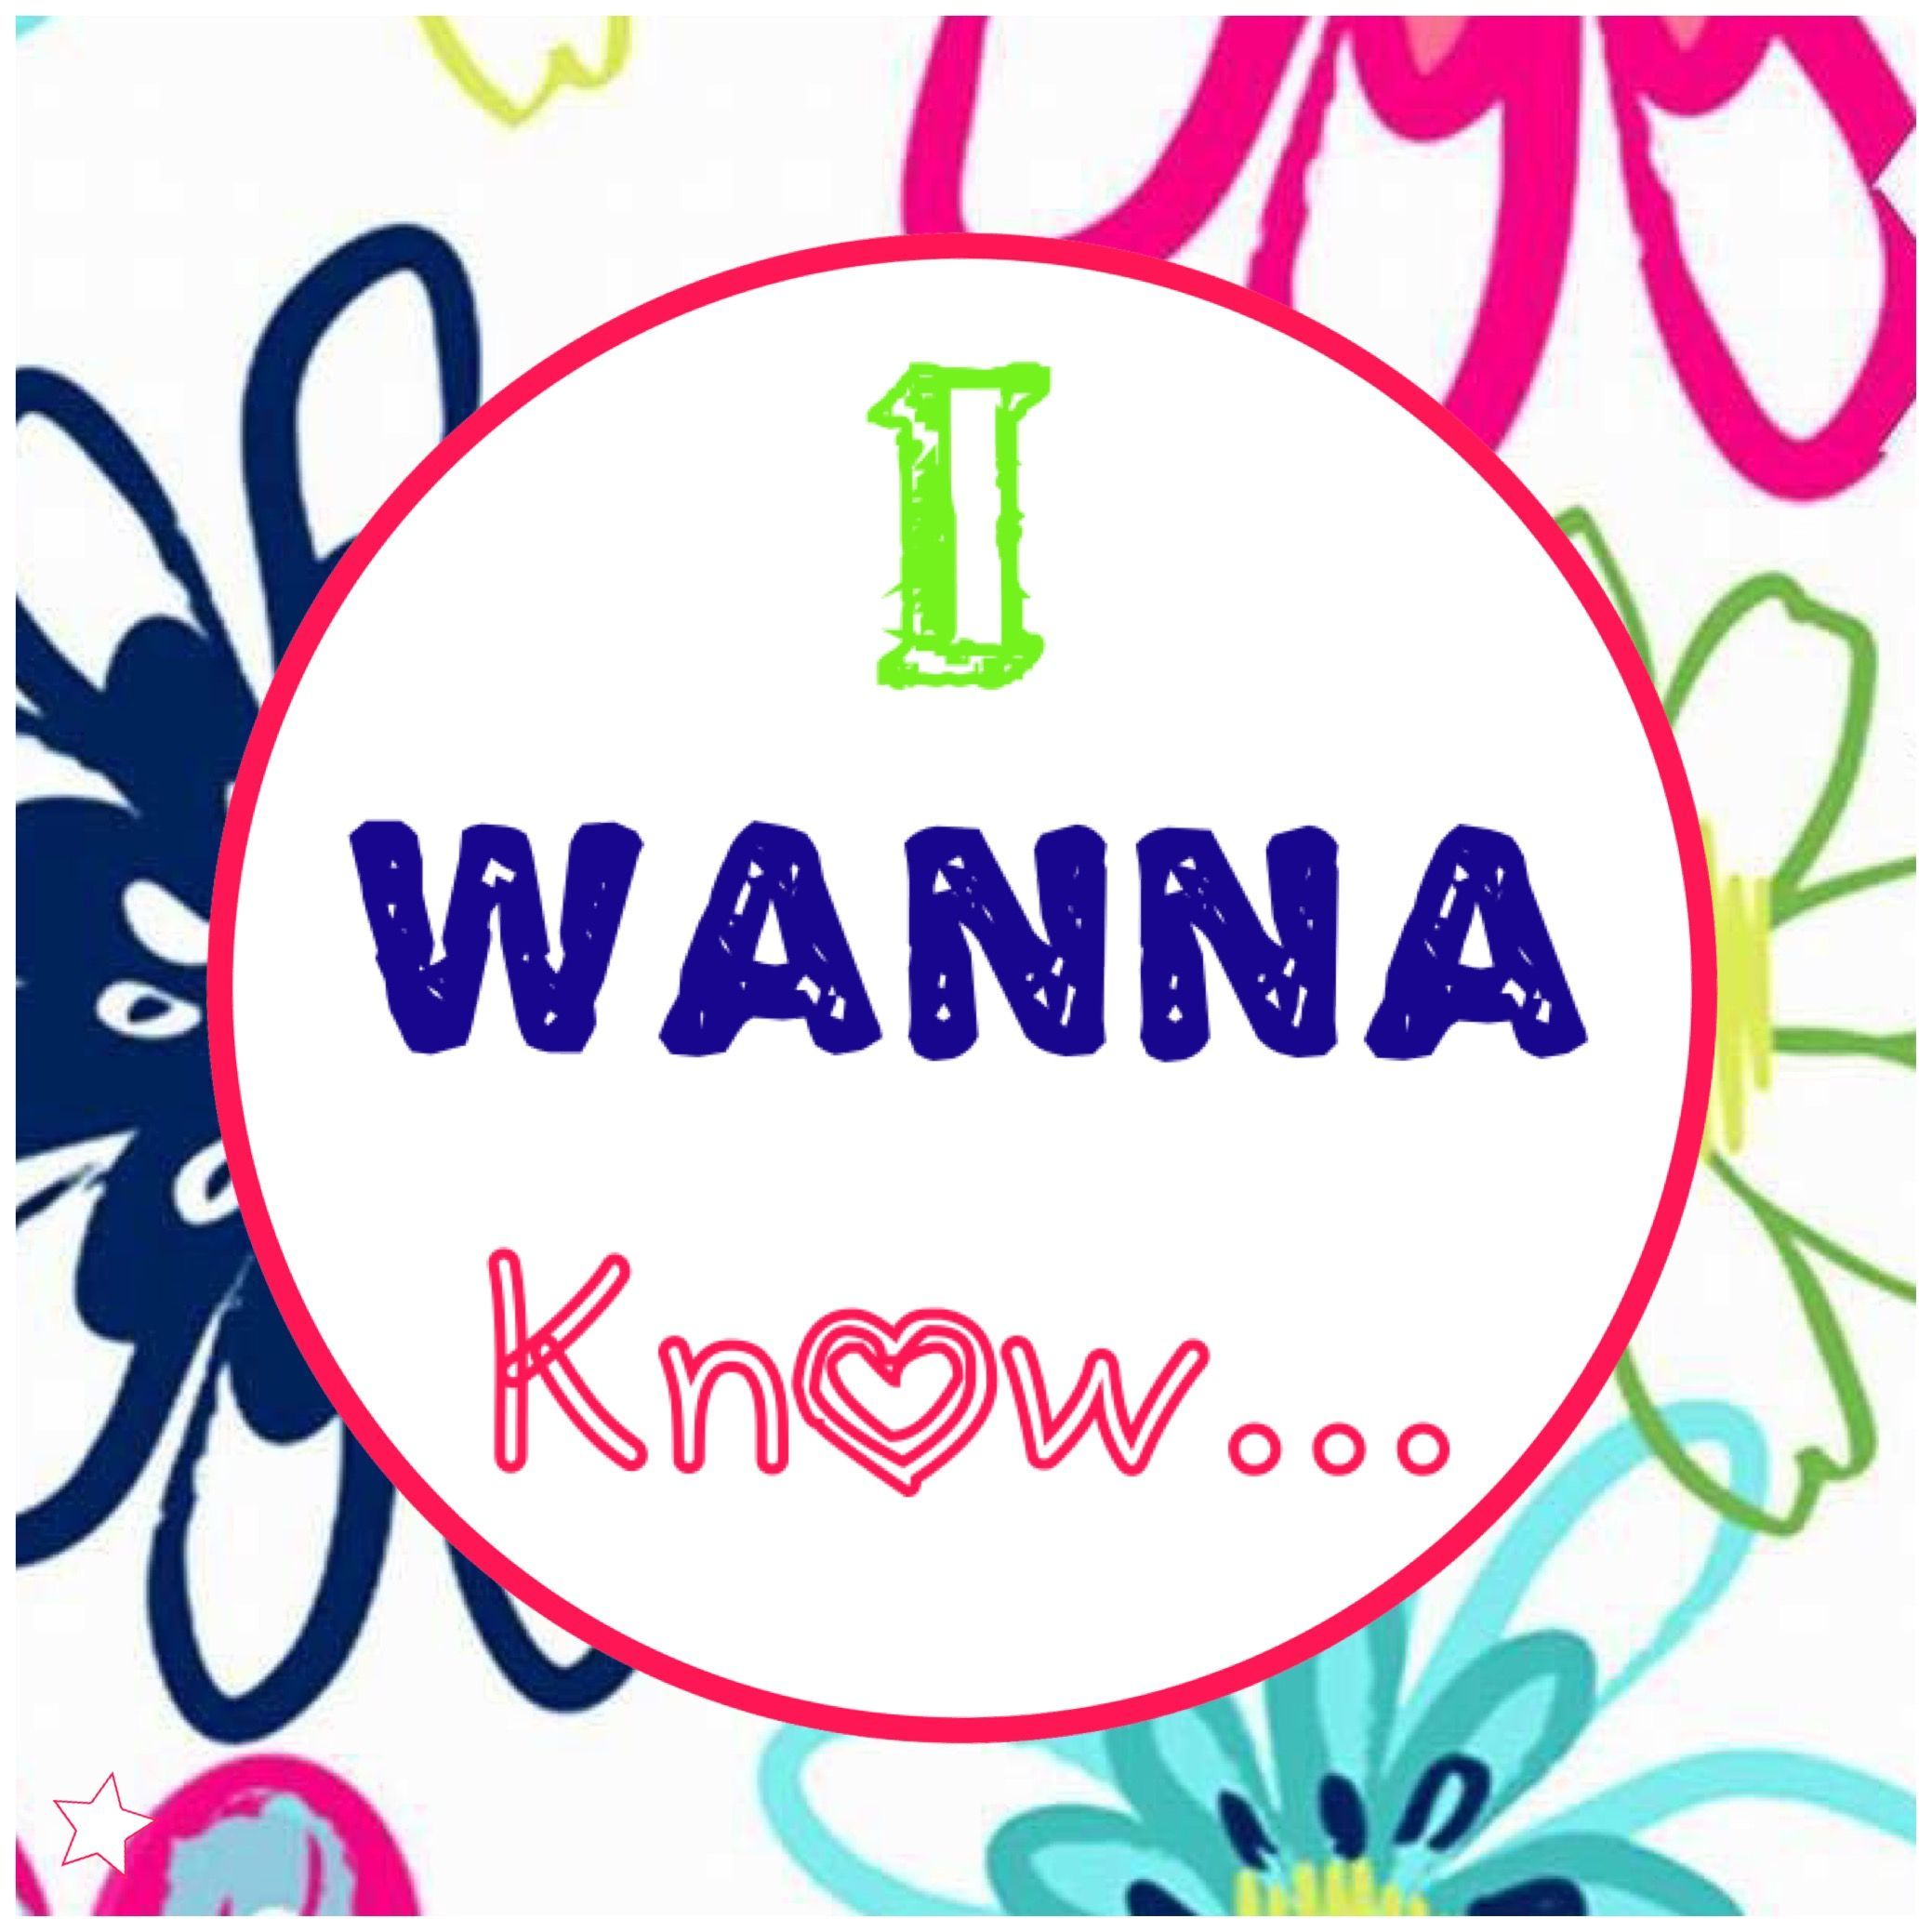 Thirty One Party Opener How Do You Know Your Hostess What Would You Like To See Durin How Do You Know Your Hostess Norwex Party How Do You Know The Hostess